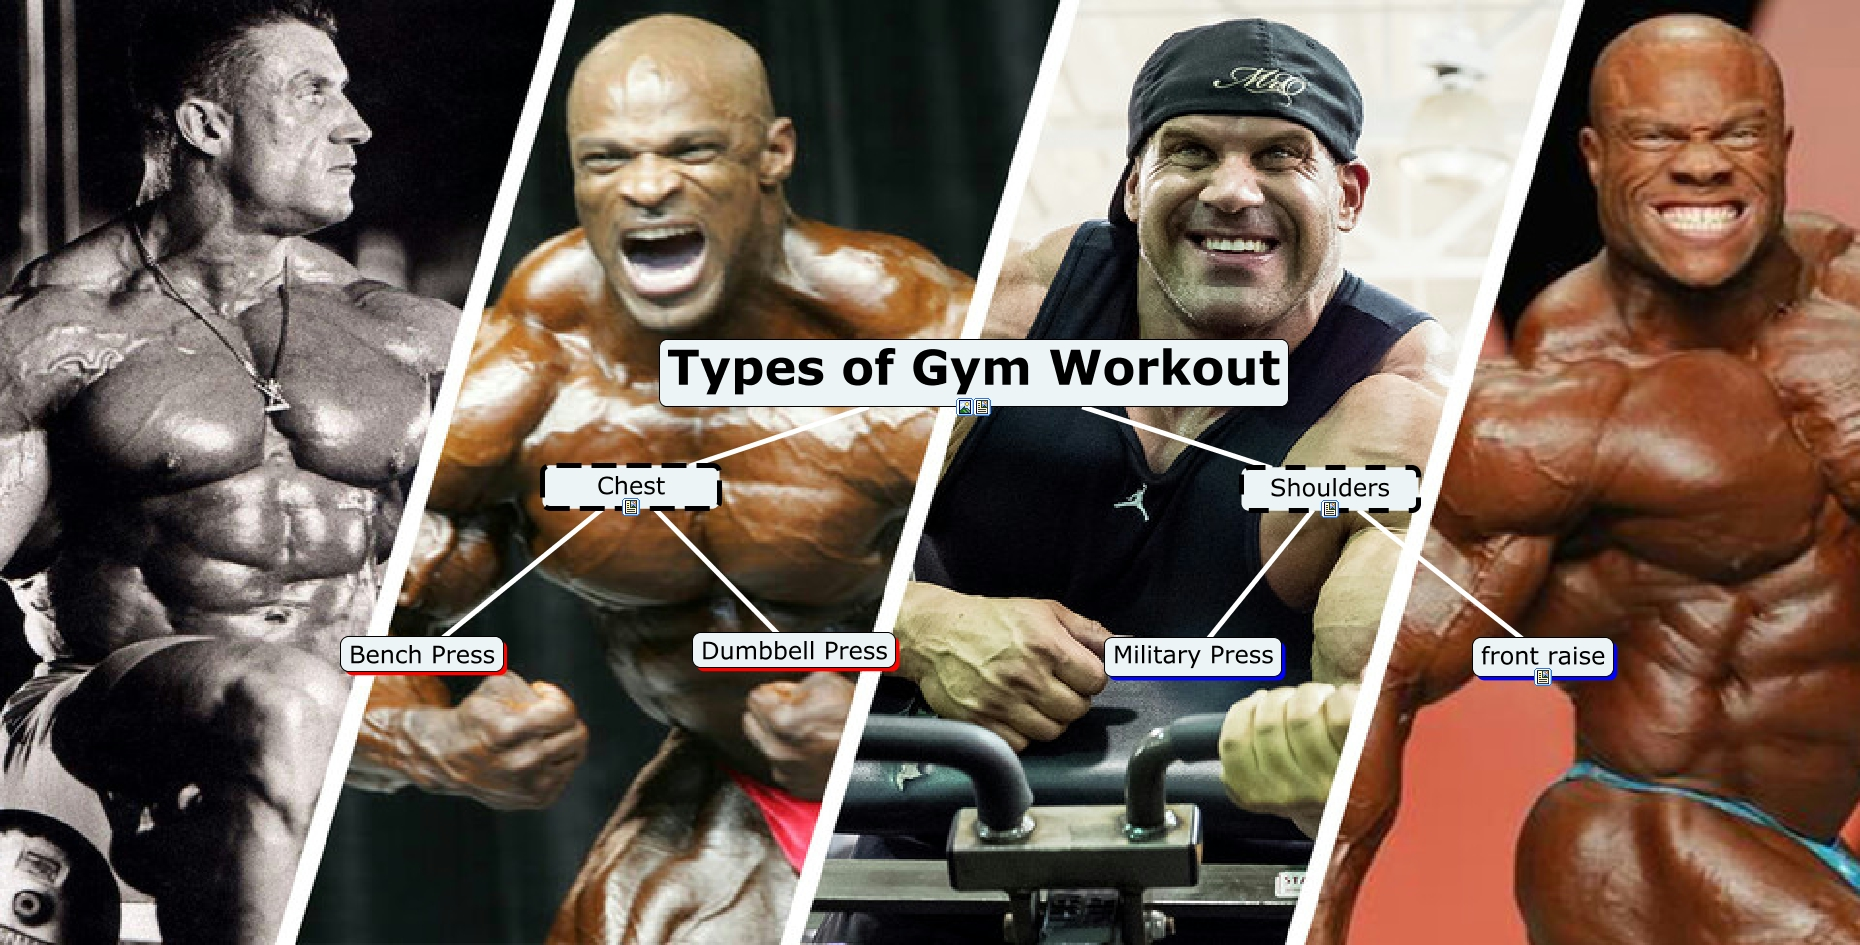 Types of Gym workout